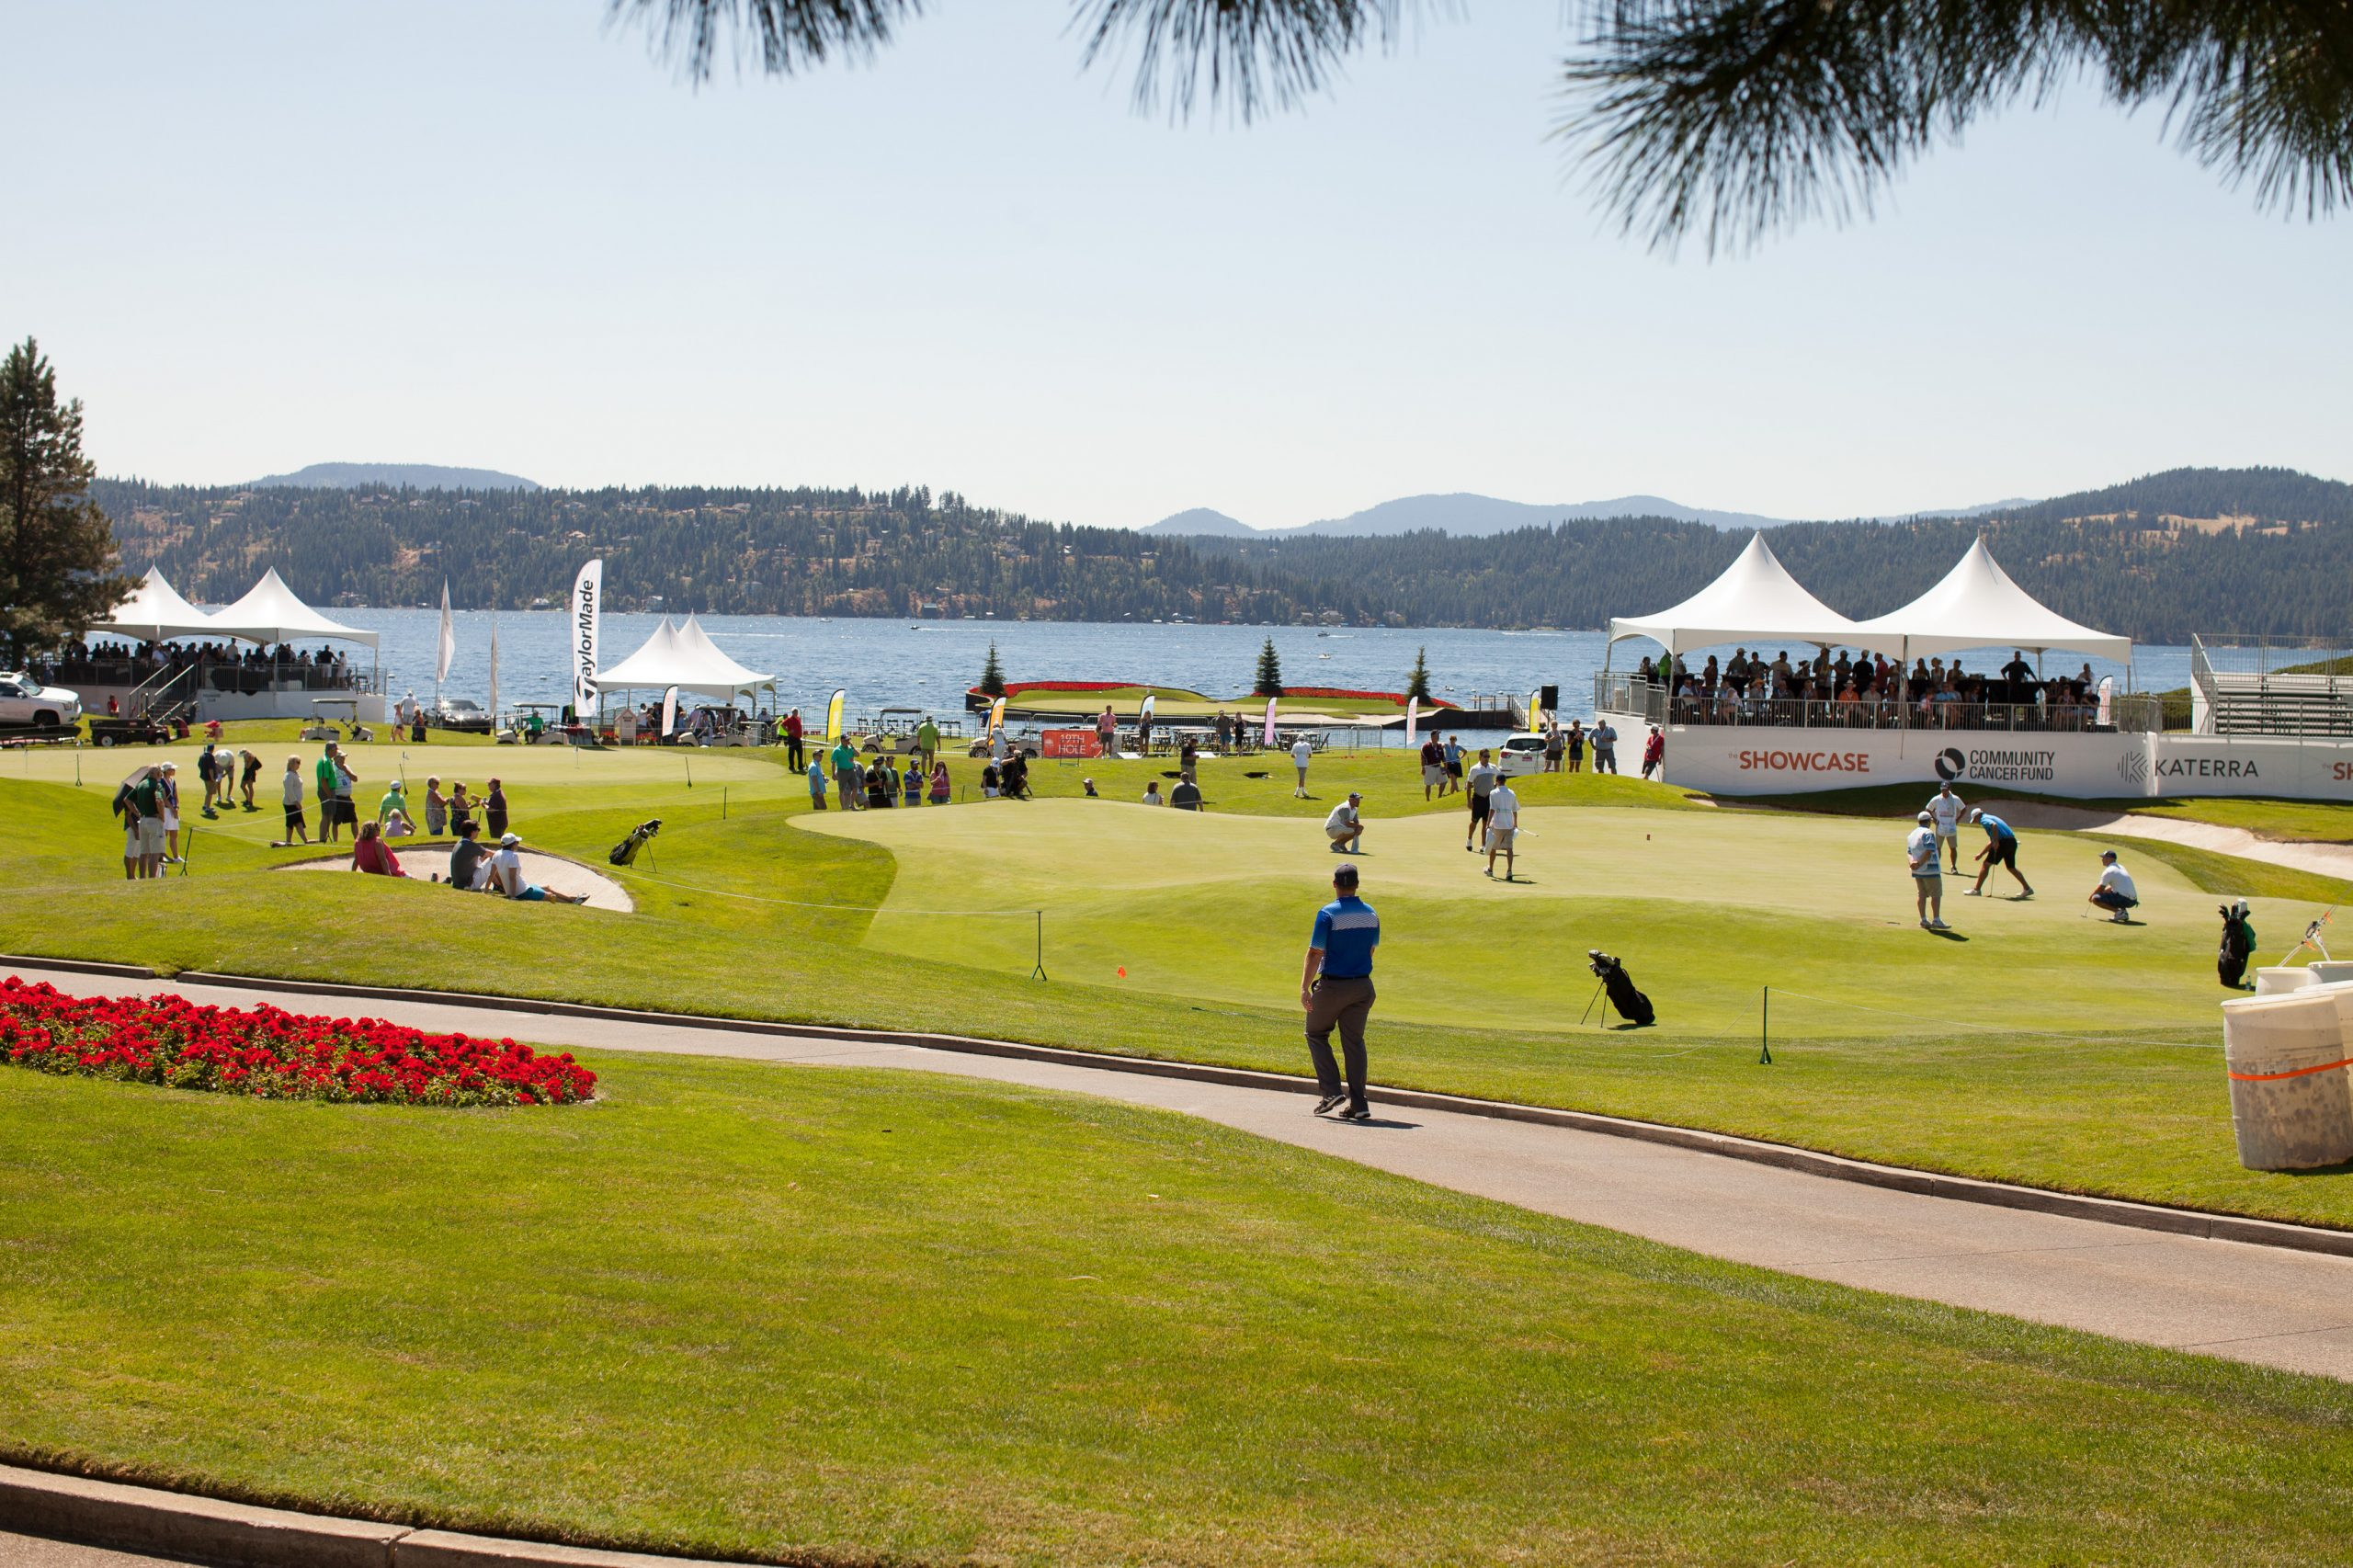 The Showcase Tournament to Continue through 2020 at The Coeur d'Alene Resort Golf Course